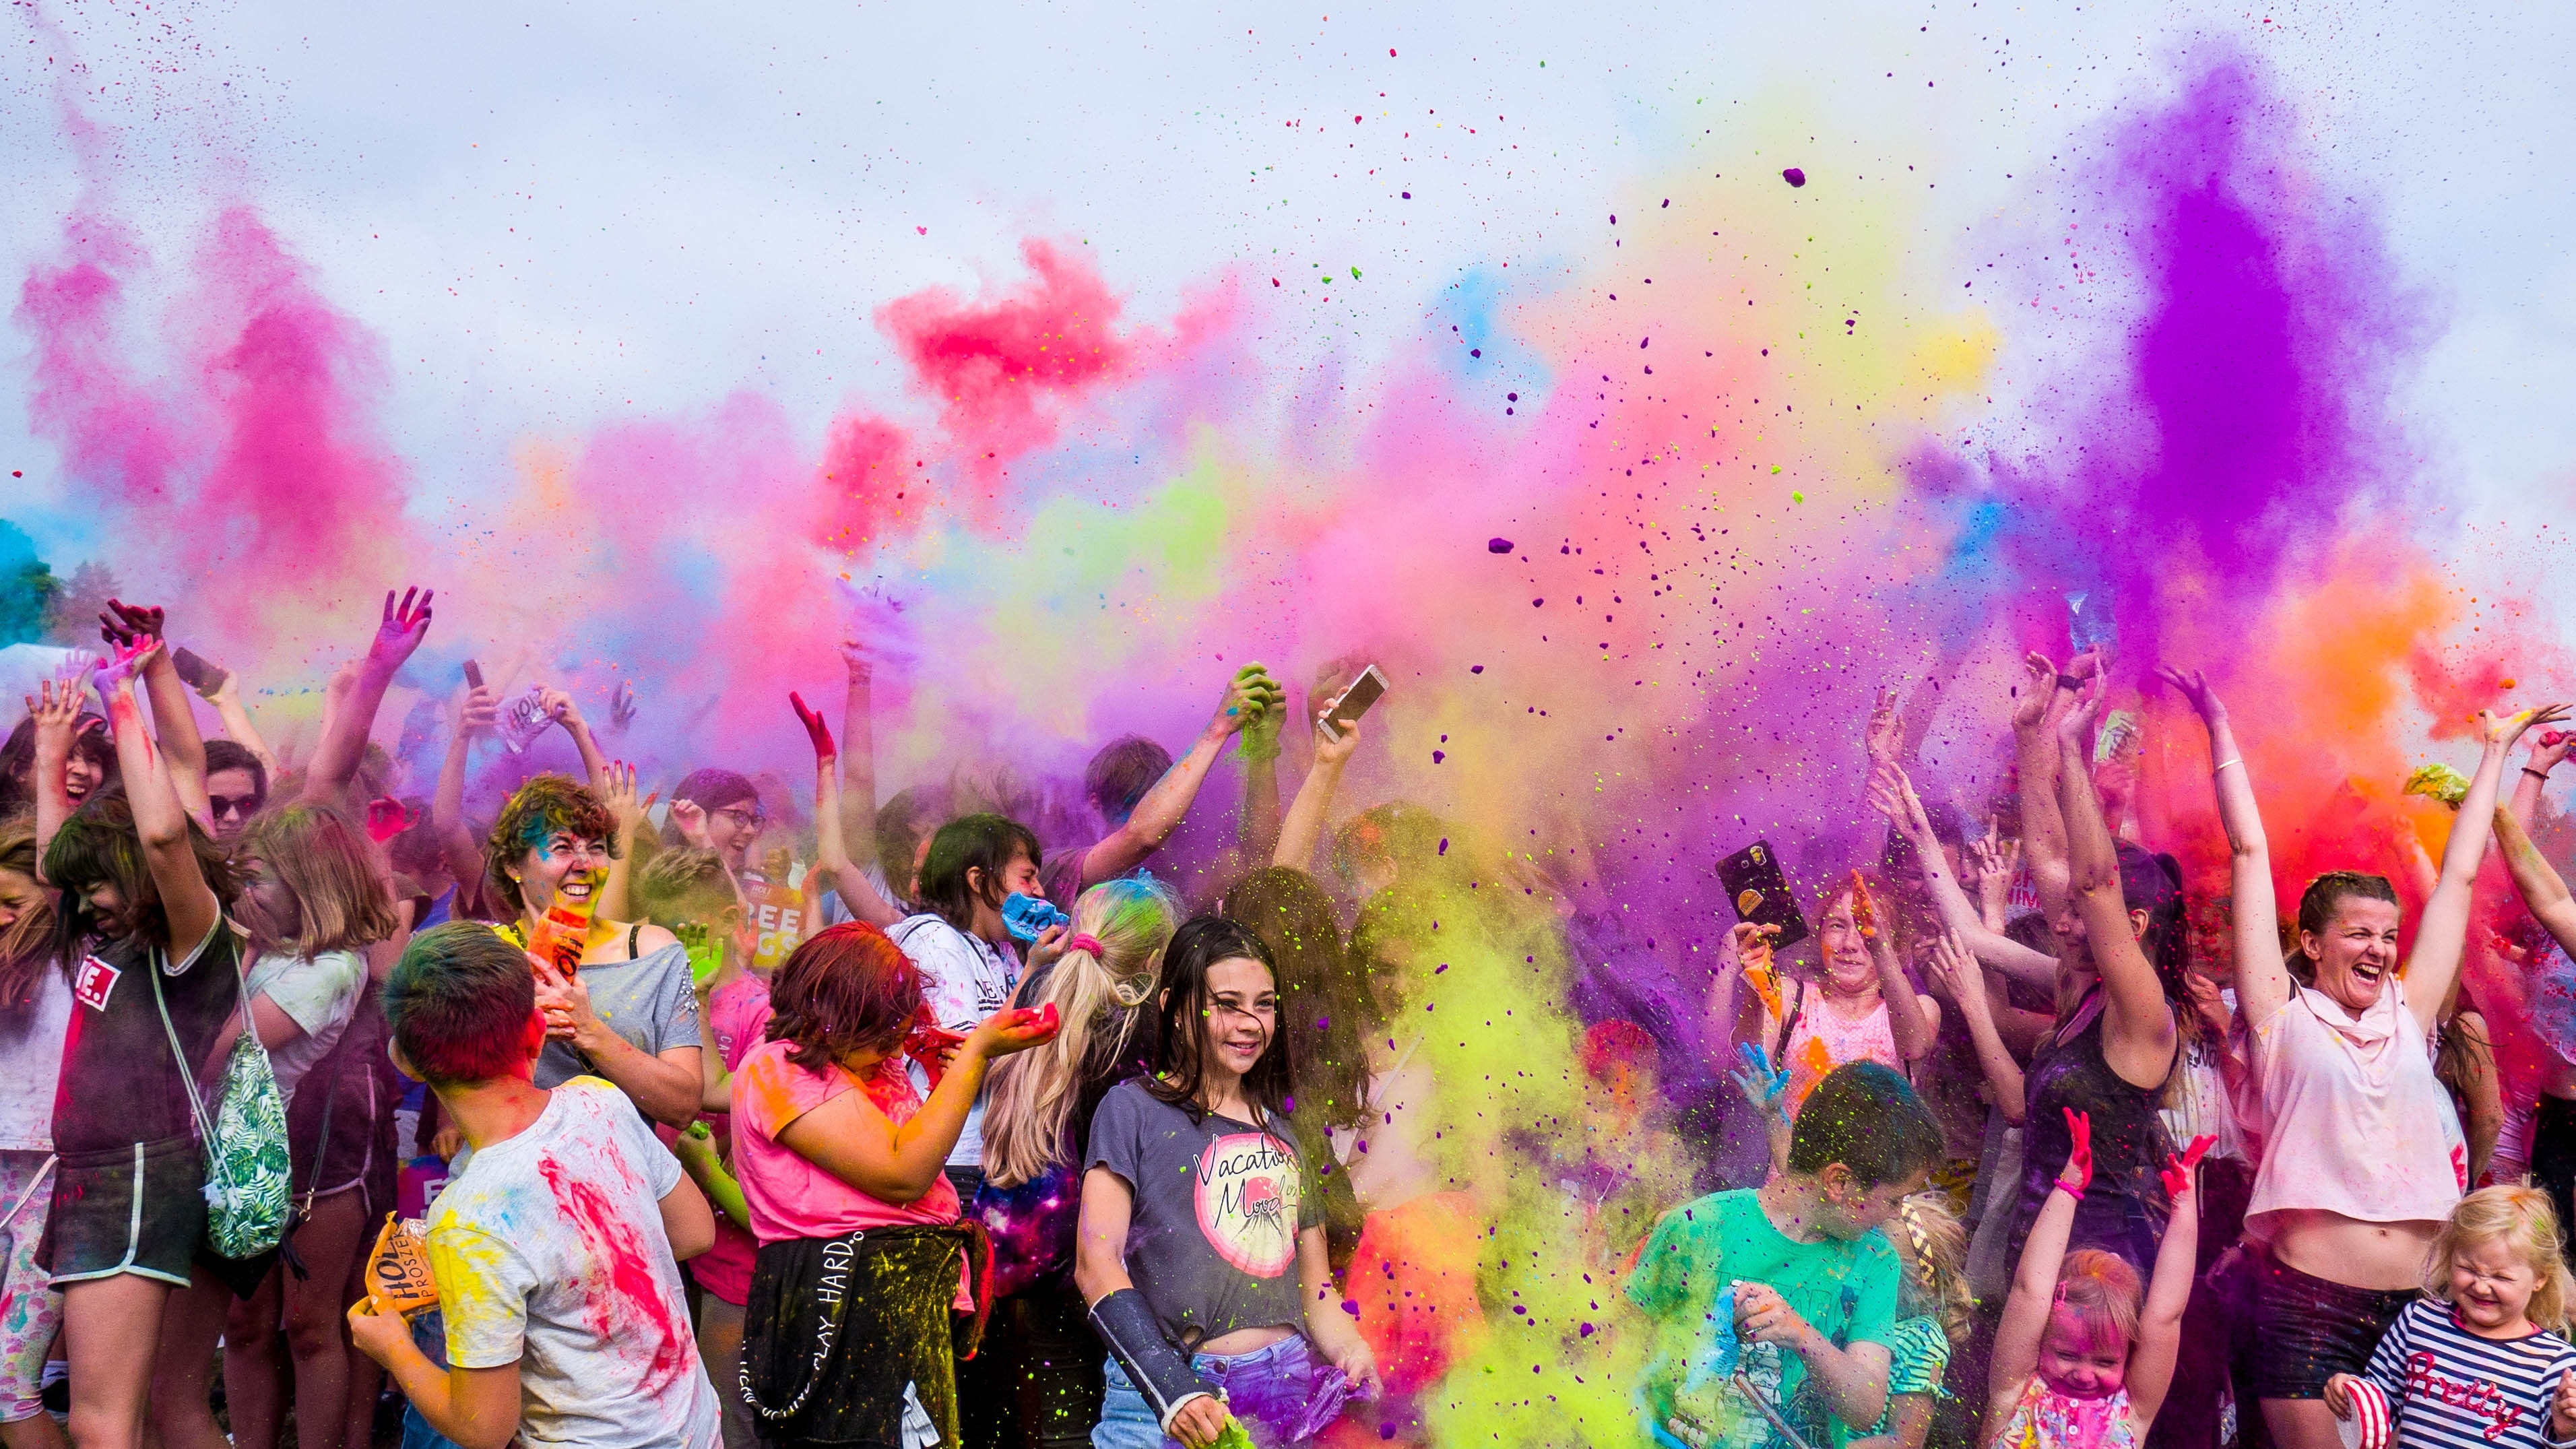 group-of-people-having-neon-party-1684187